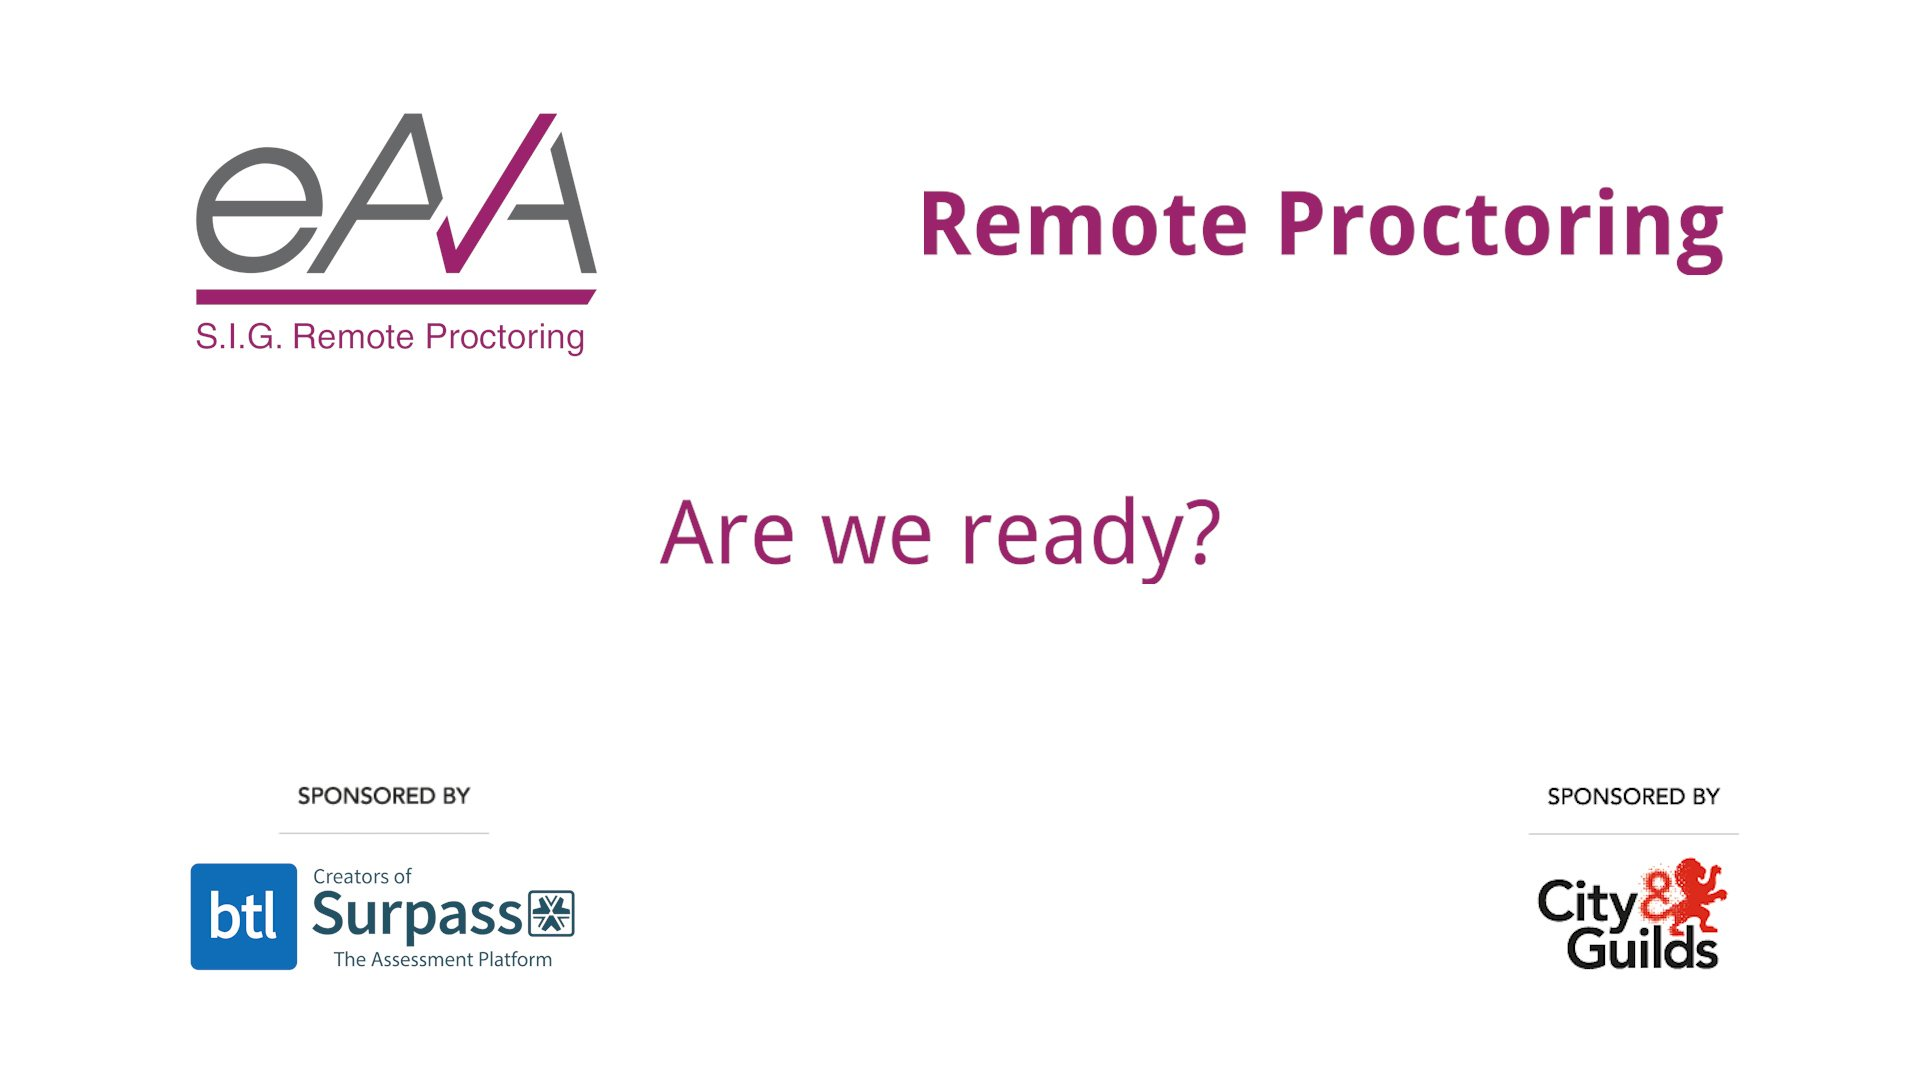 eAA Remote Proctoring Discussion – Are we ready?